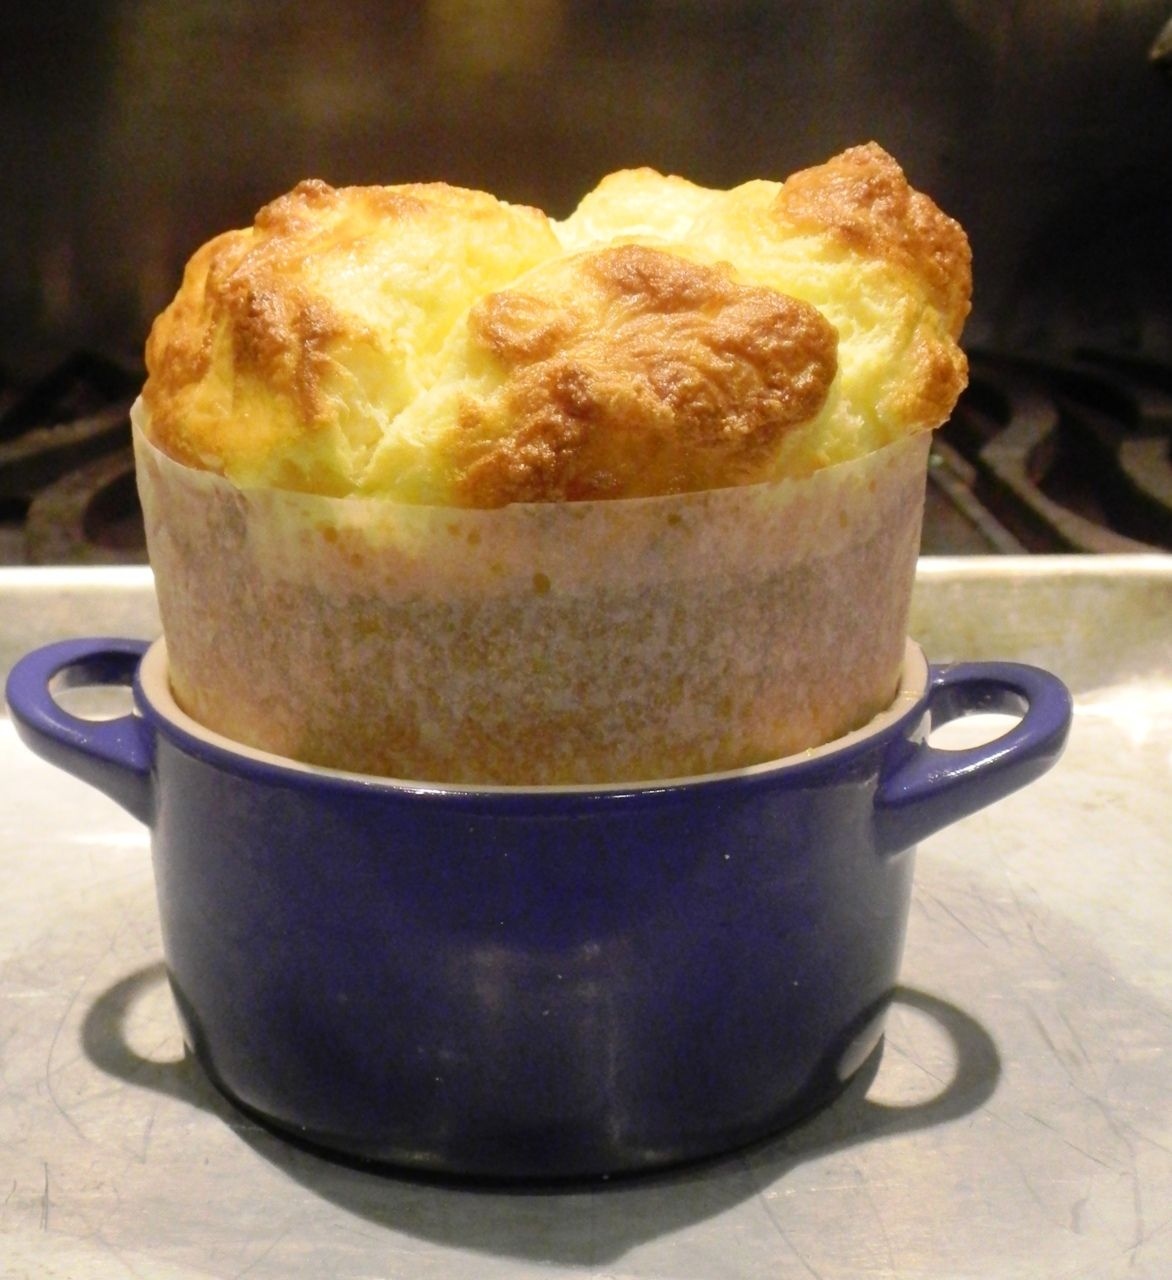 August 15 2011 Cheese Souffle Today Would Have Been Julia Child S 99th Birthday And To Celebrate This I Am Making A Cheese Souffl With Images Souffle Recipes Recipes Food